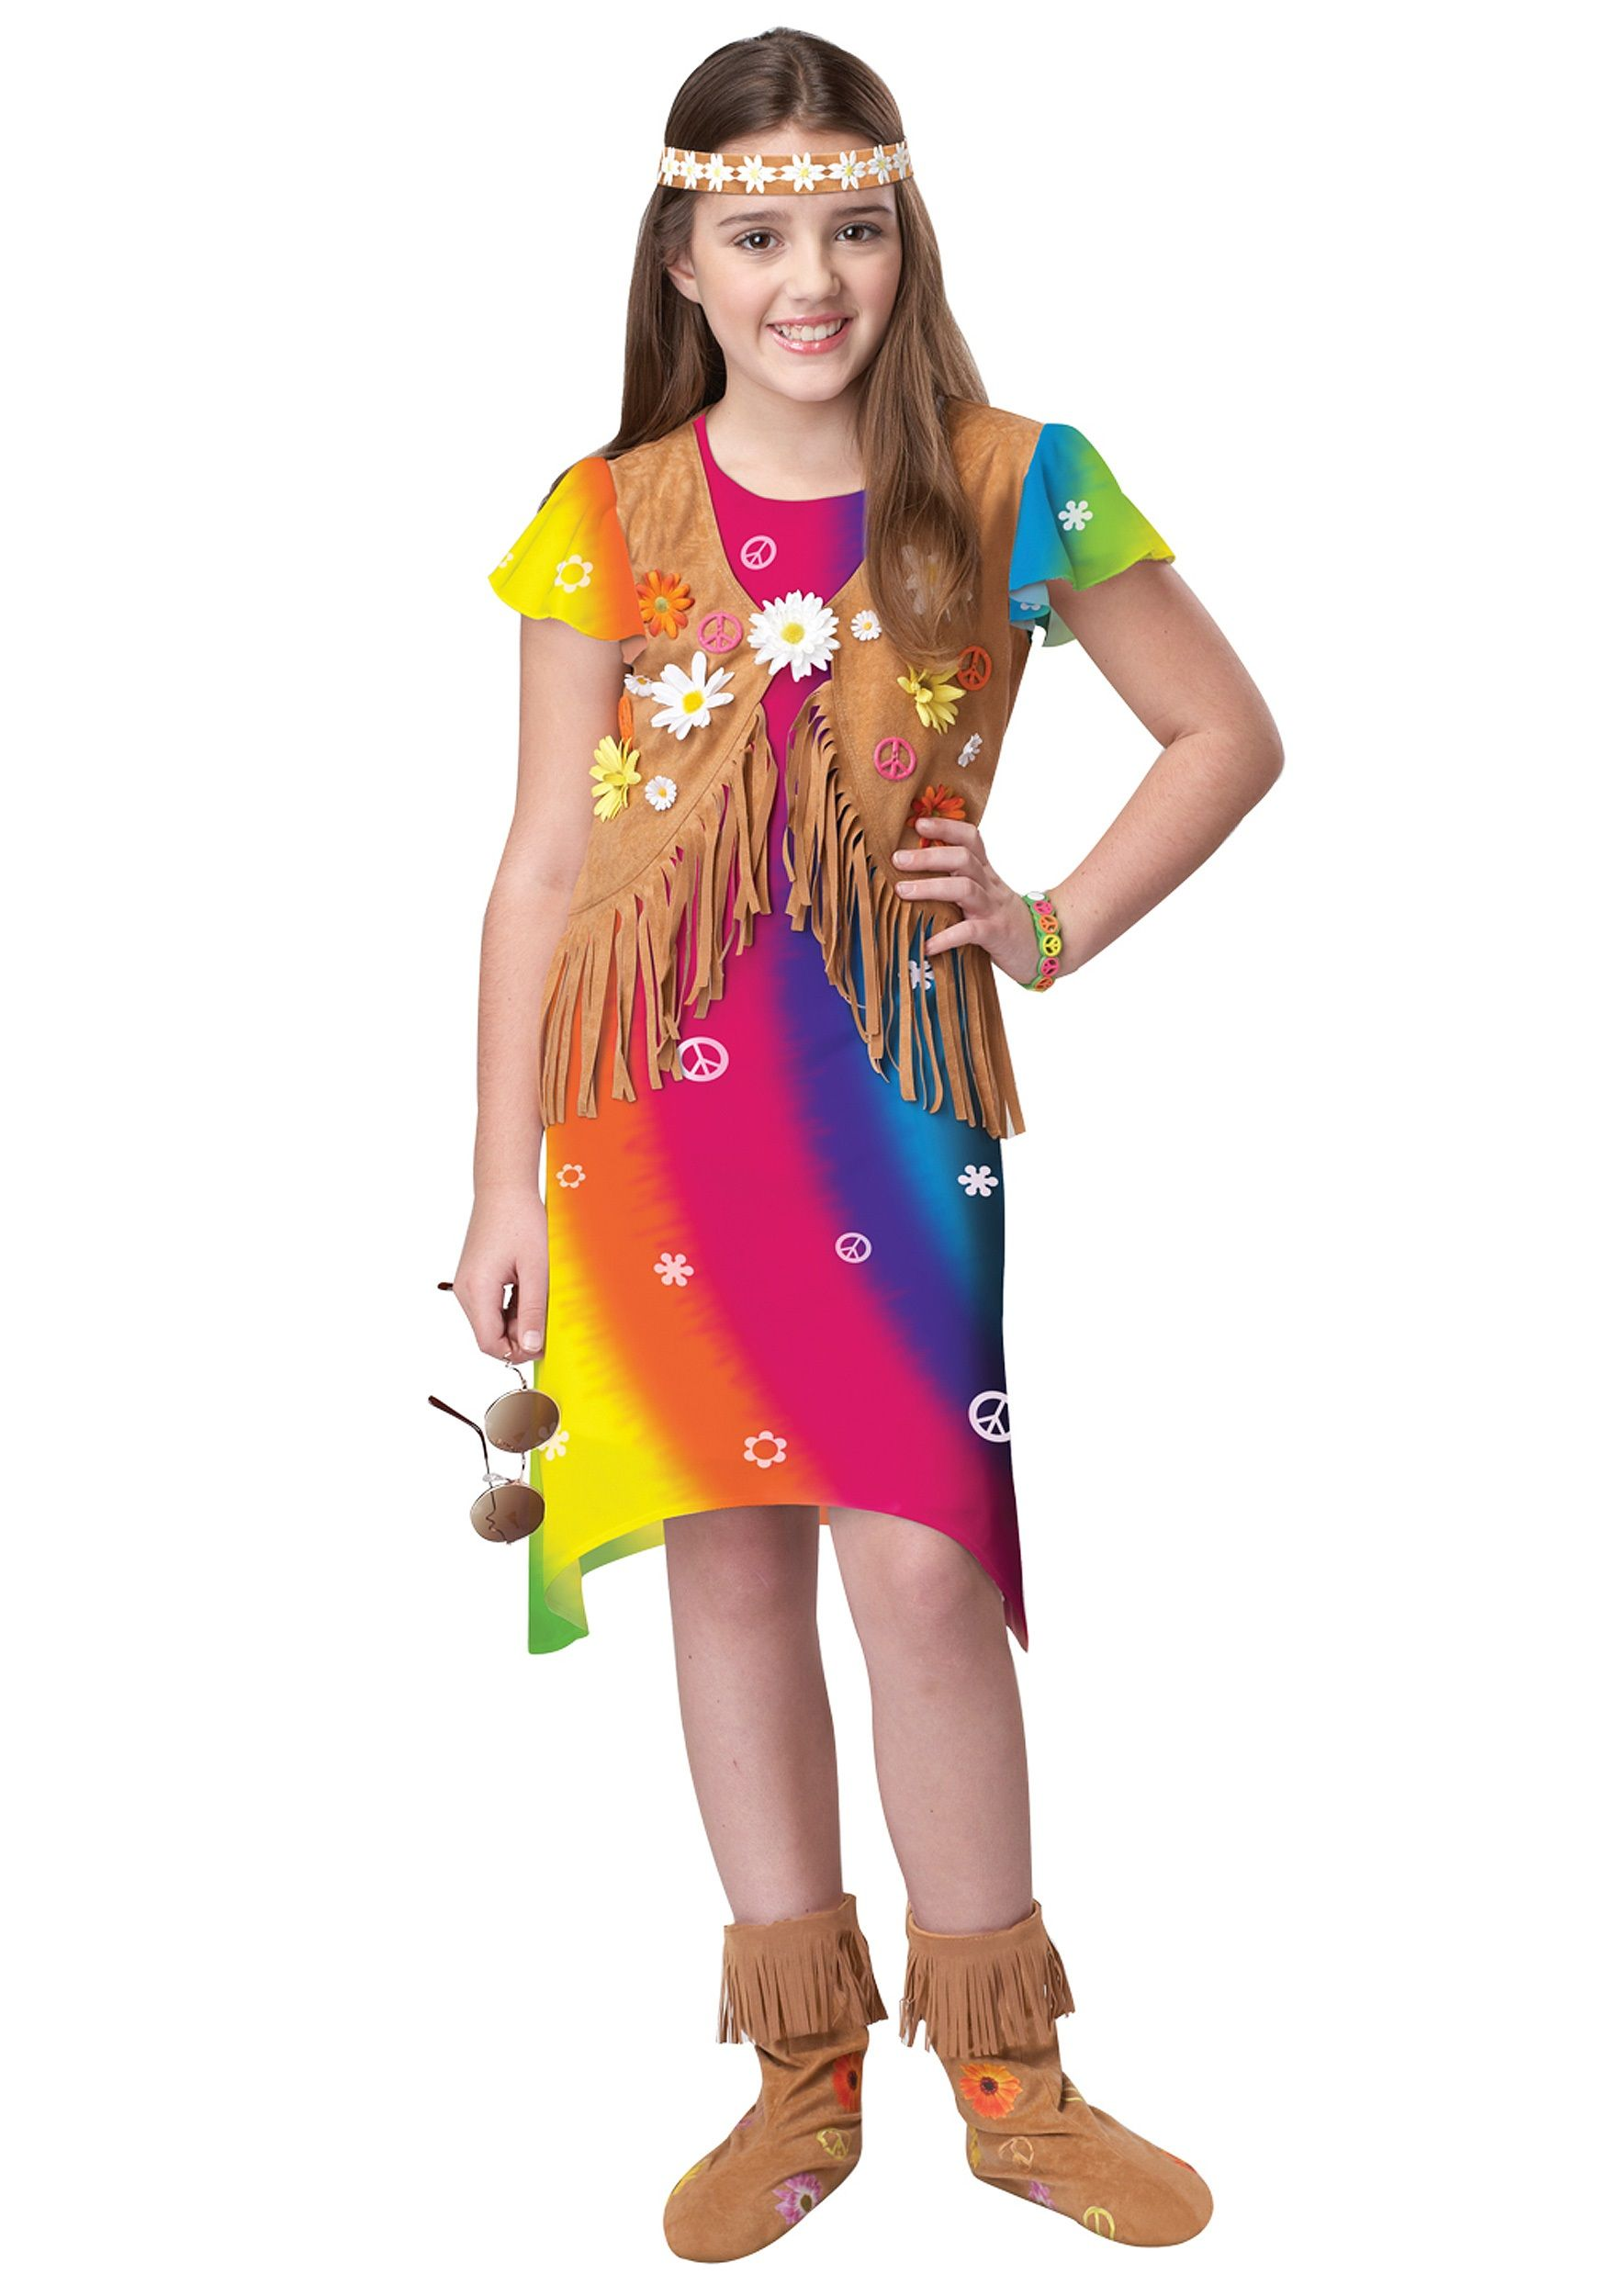 Christmas gown ideas 70s halloween - Hippy Costumes For Kids Girl Bright Hippie Girl Costume Girls 1970s Costume Ideas